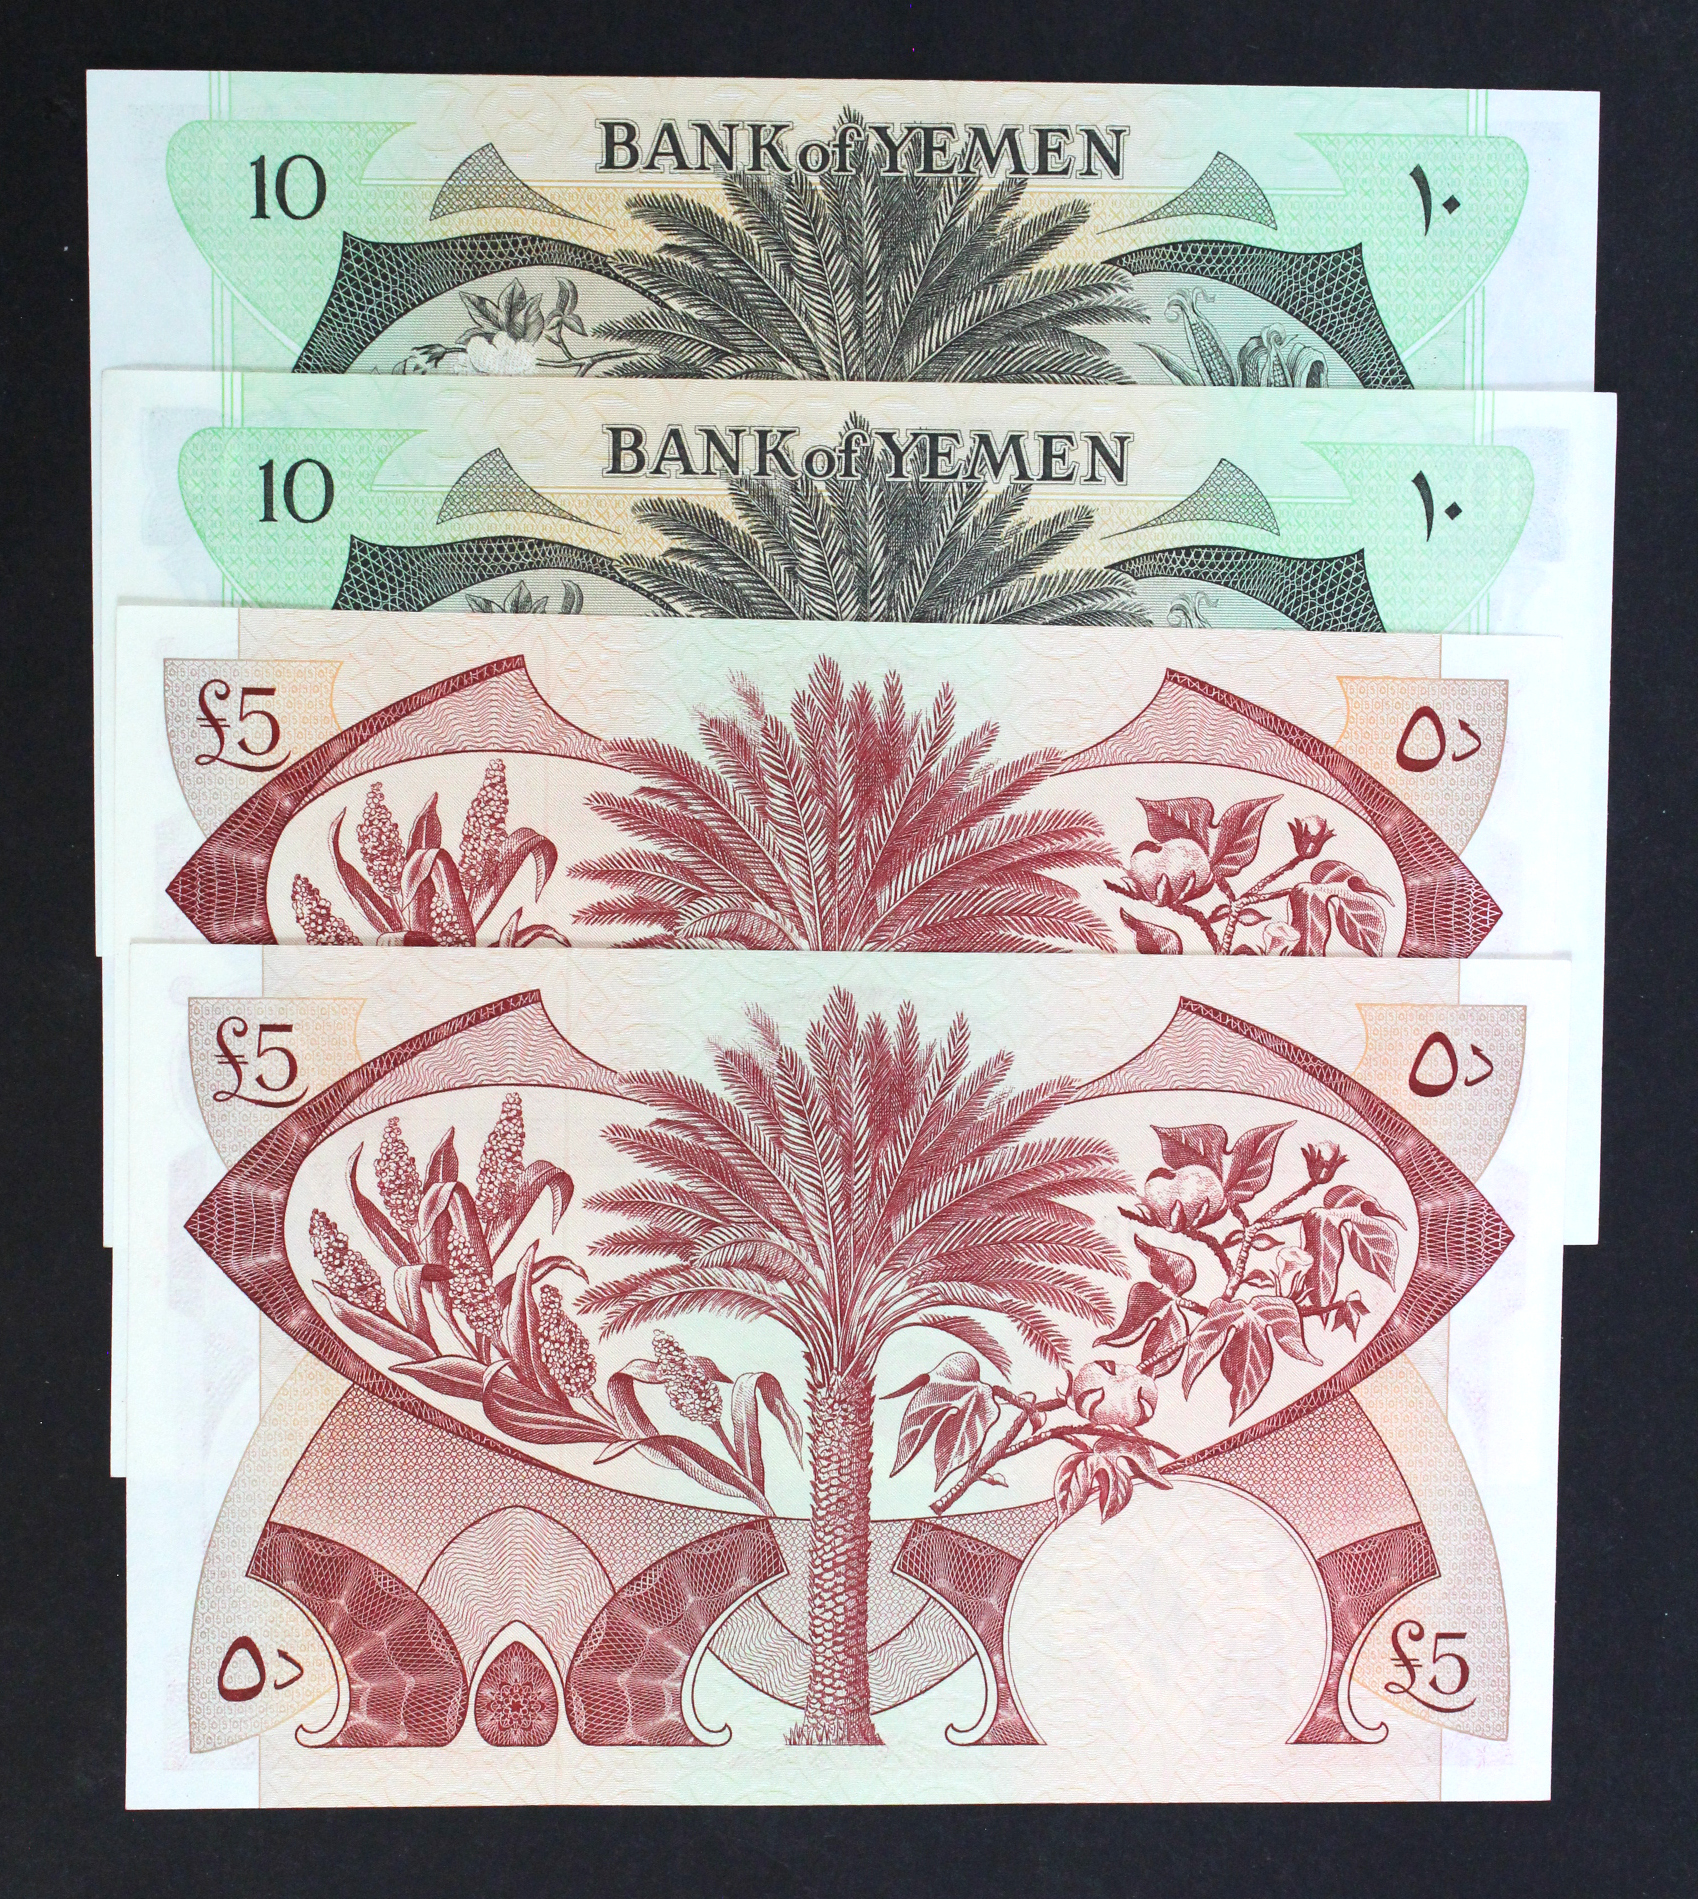 Yemen Democratic Republic (4) 10 Dinars issued 1984 (2), serial number 666106 and 413851 (TBB B104b, - Image 2 of 2